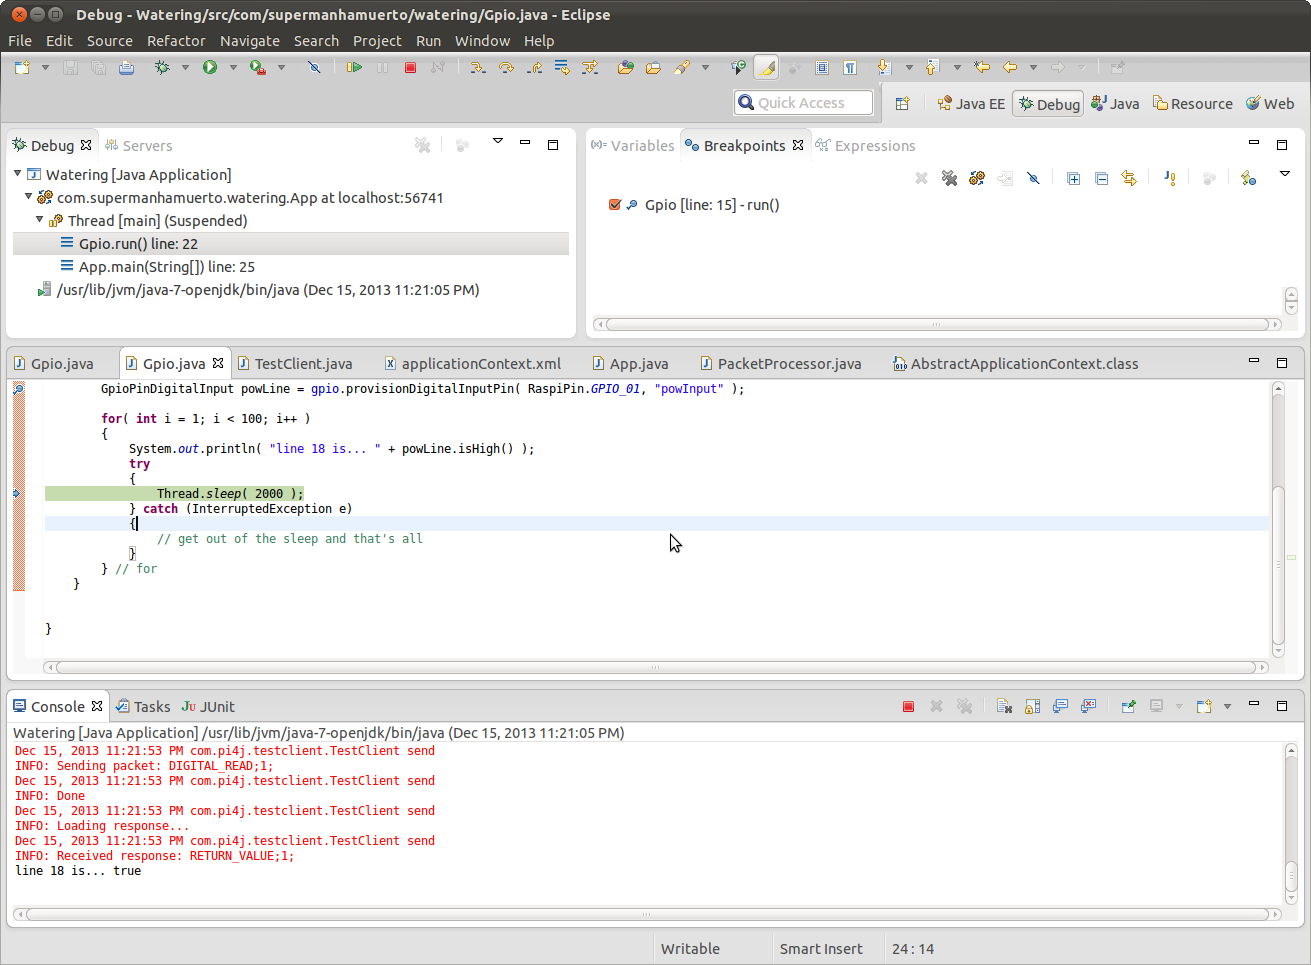 java:screenshot_at_2013-12-15_23_22_04.png